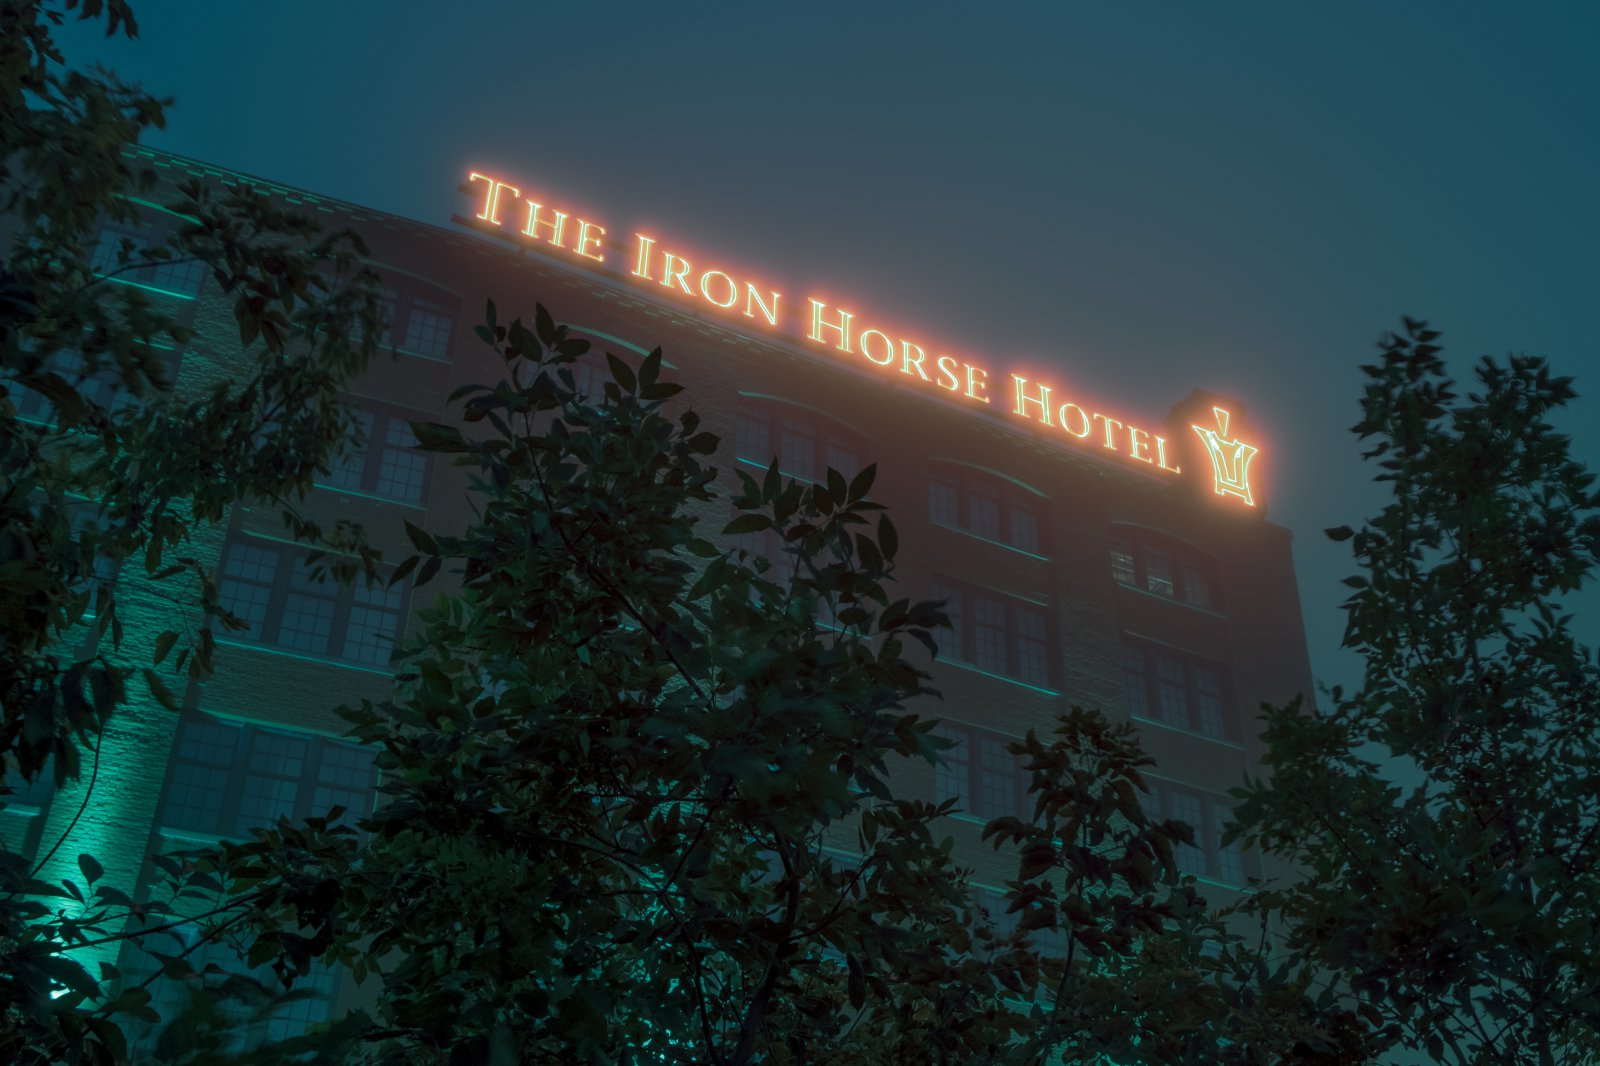 The Iron Horse Hotel. Photo by Sean Sweeney Photography.